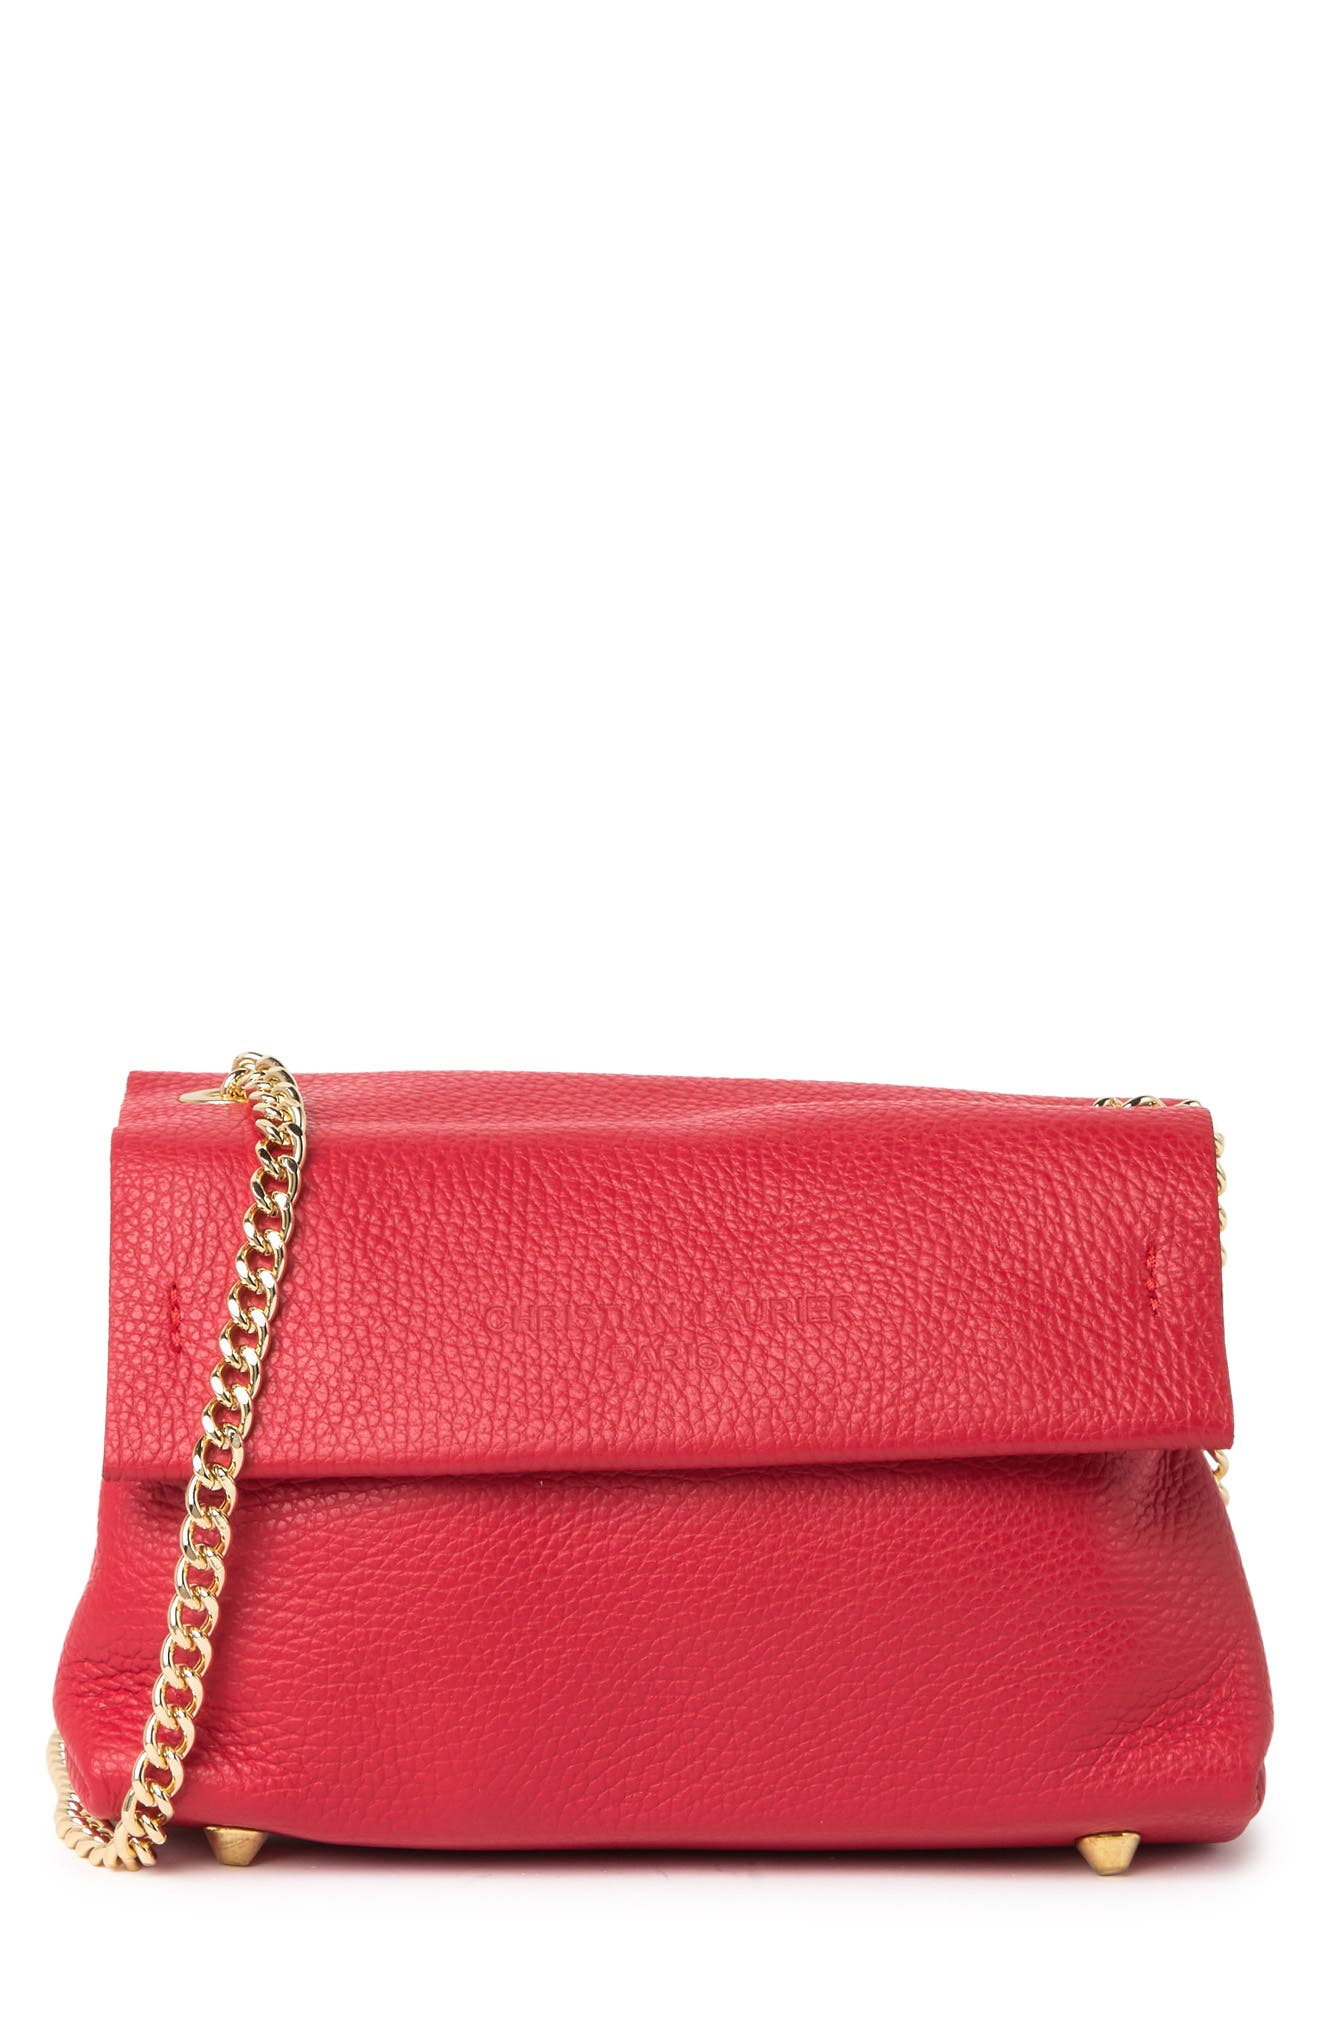 Image of CHRISTIAN LAURIER Gina Leather Clutch